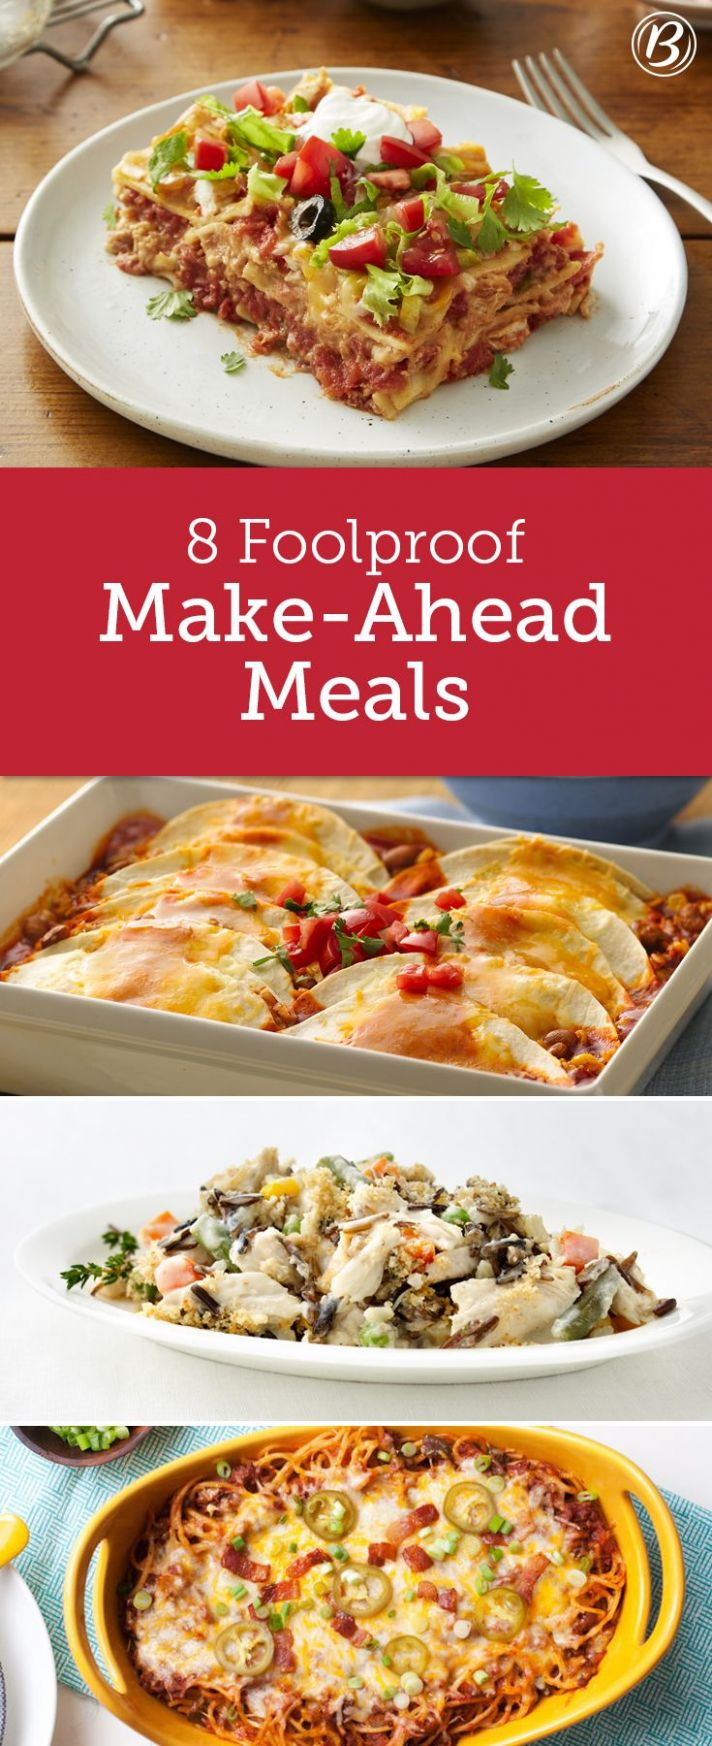 Freezer Meals You Can Make Ahead | Meals, Make ahead meals, Food ...